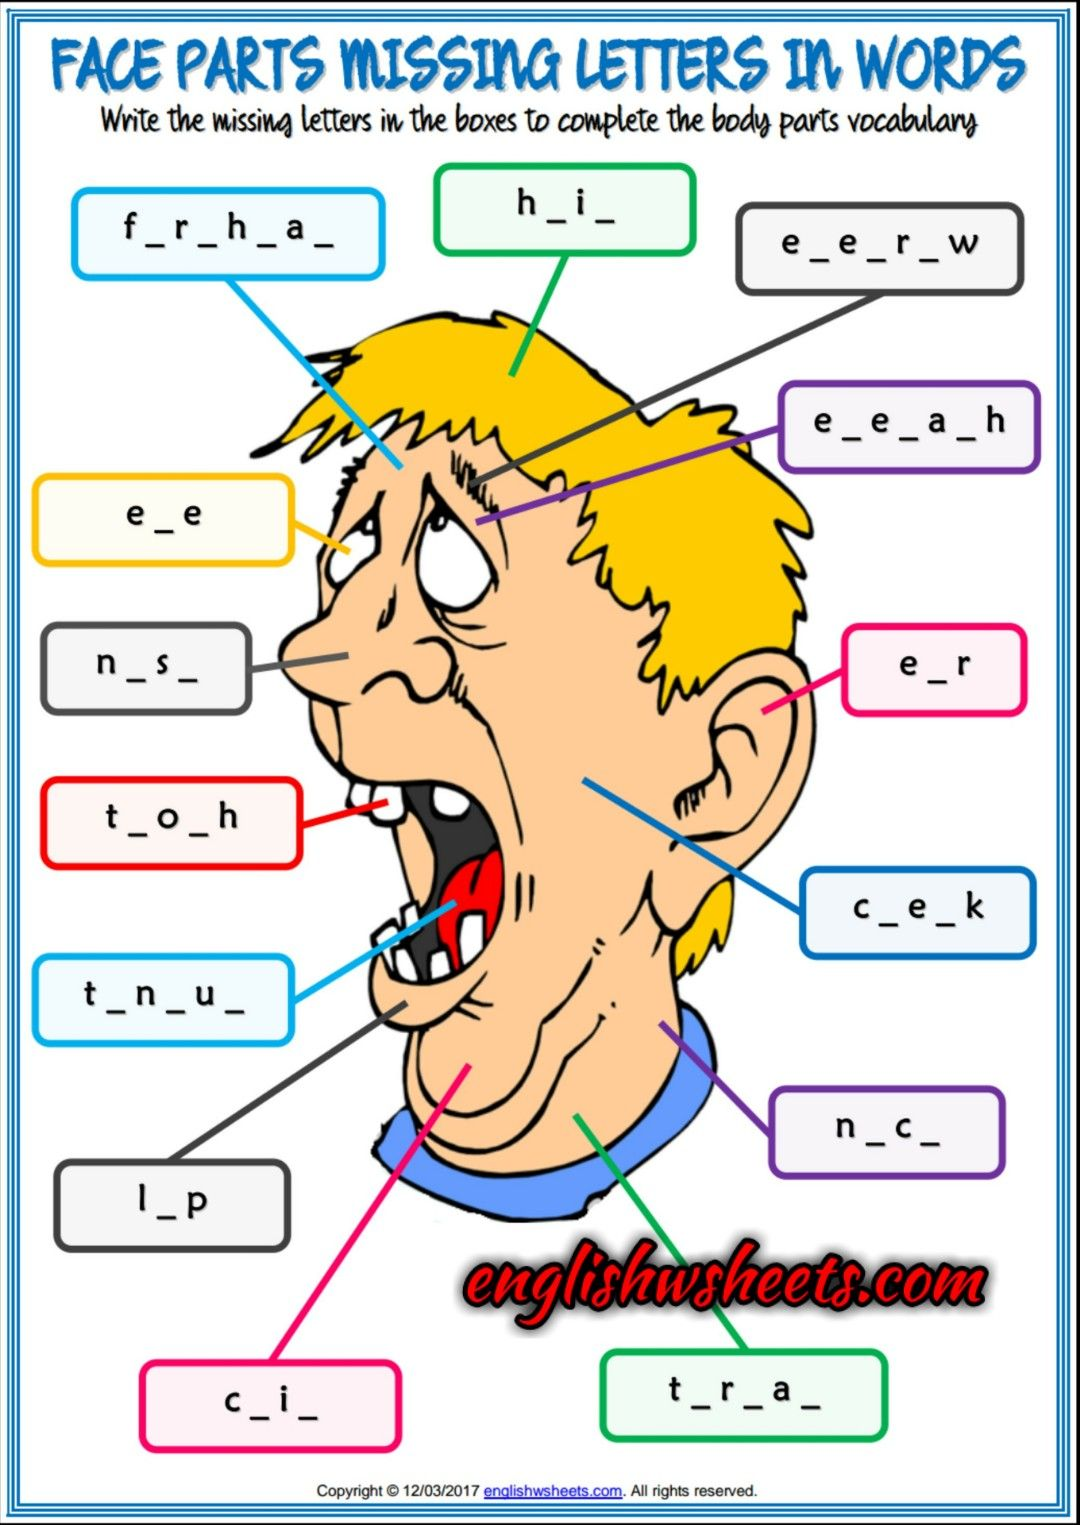 Face Parts Esl Printable Missing Letters In Words